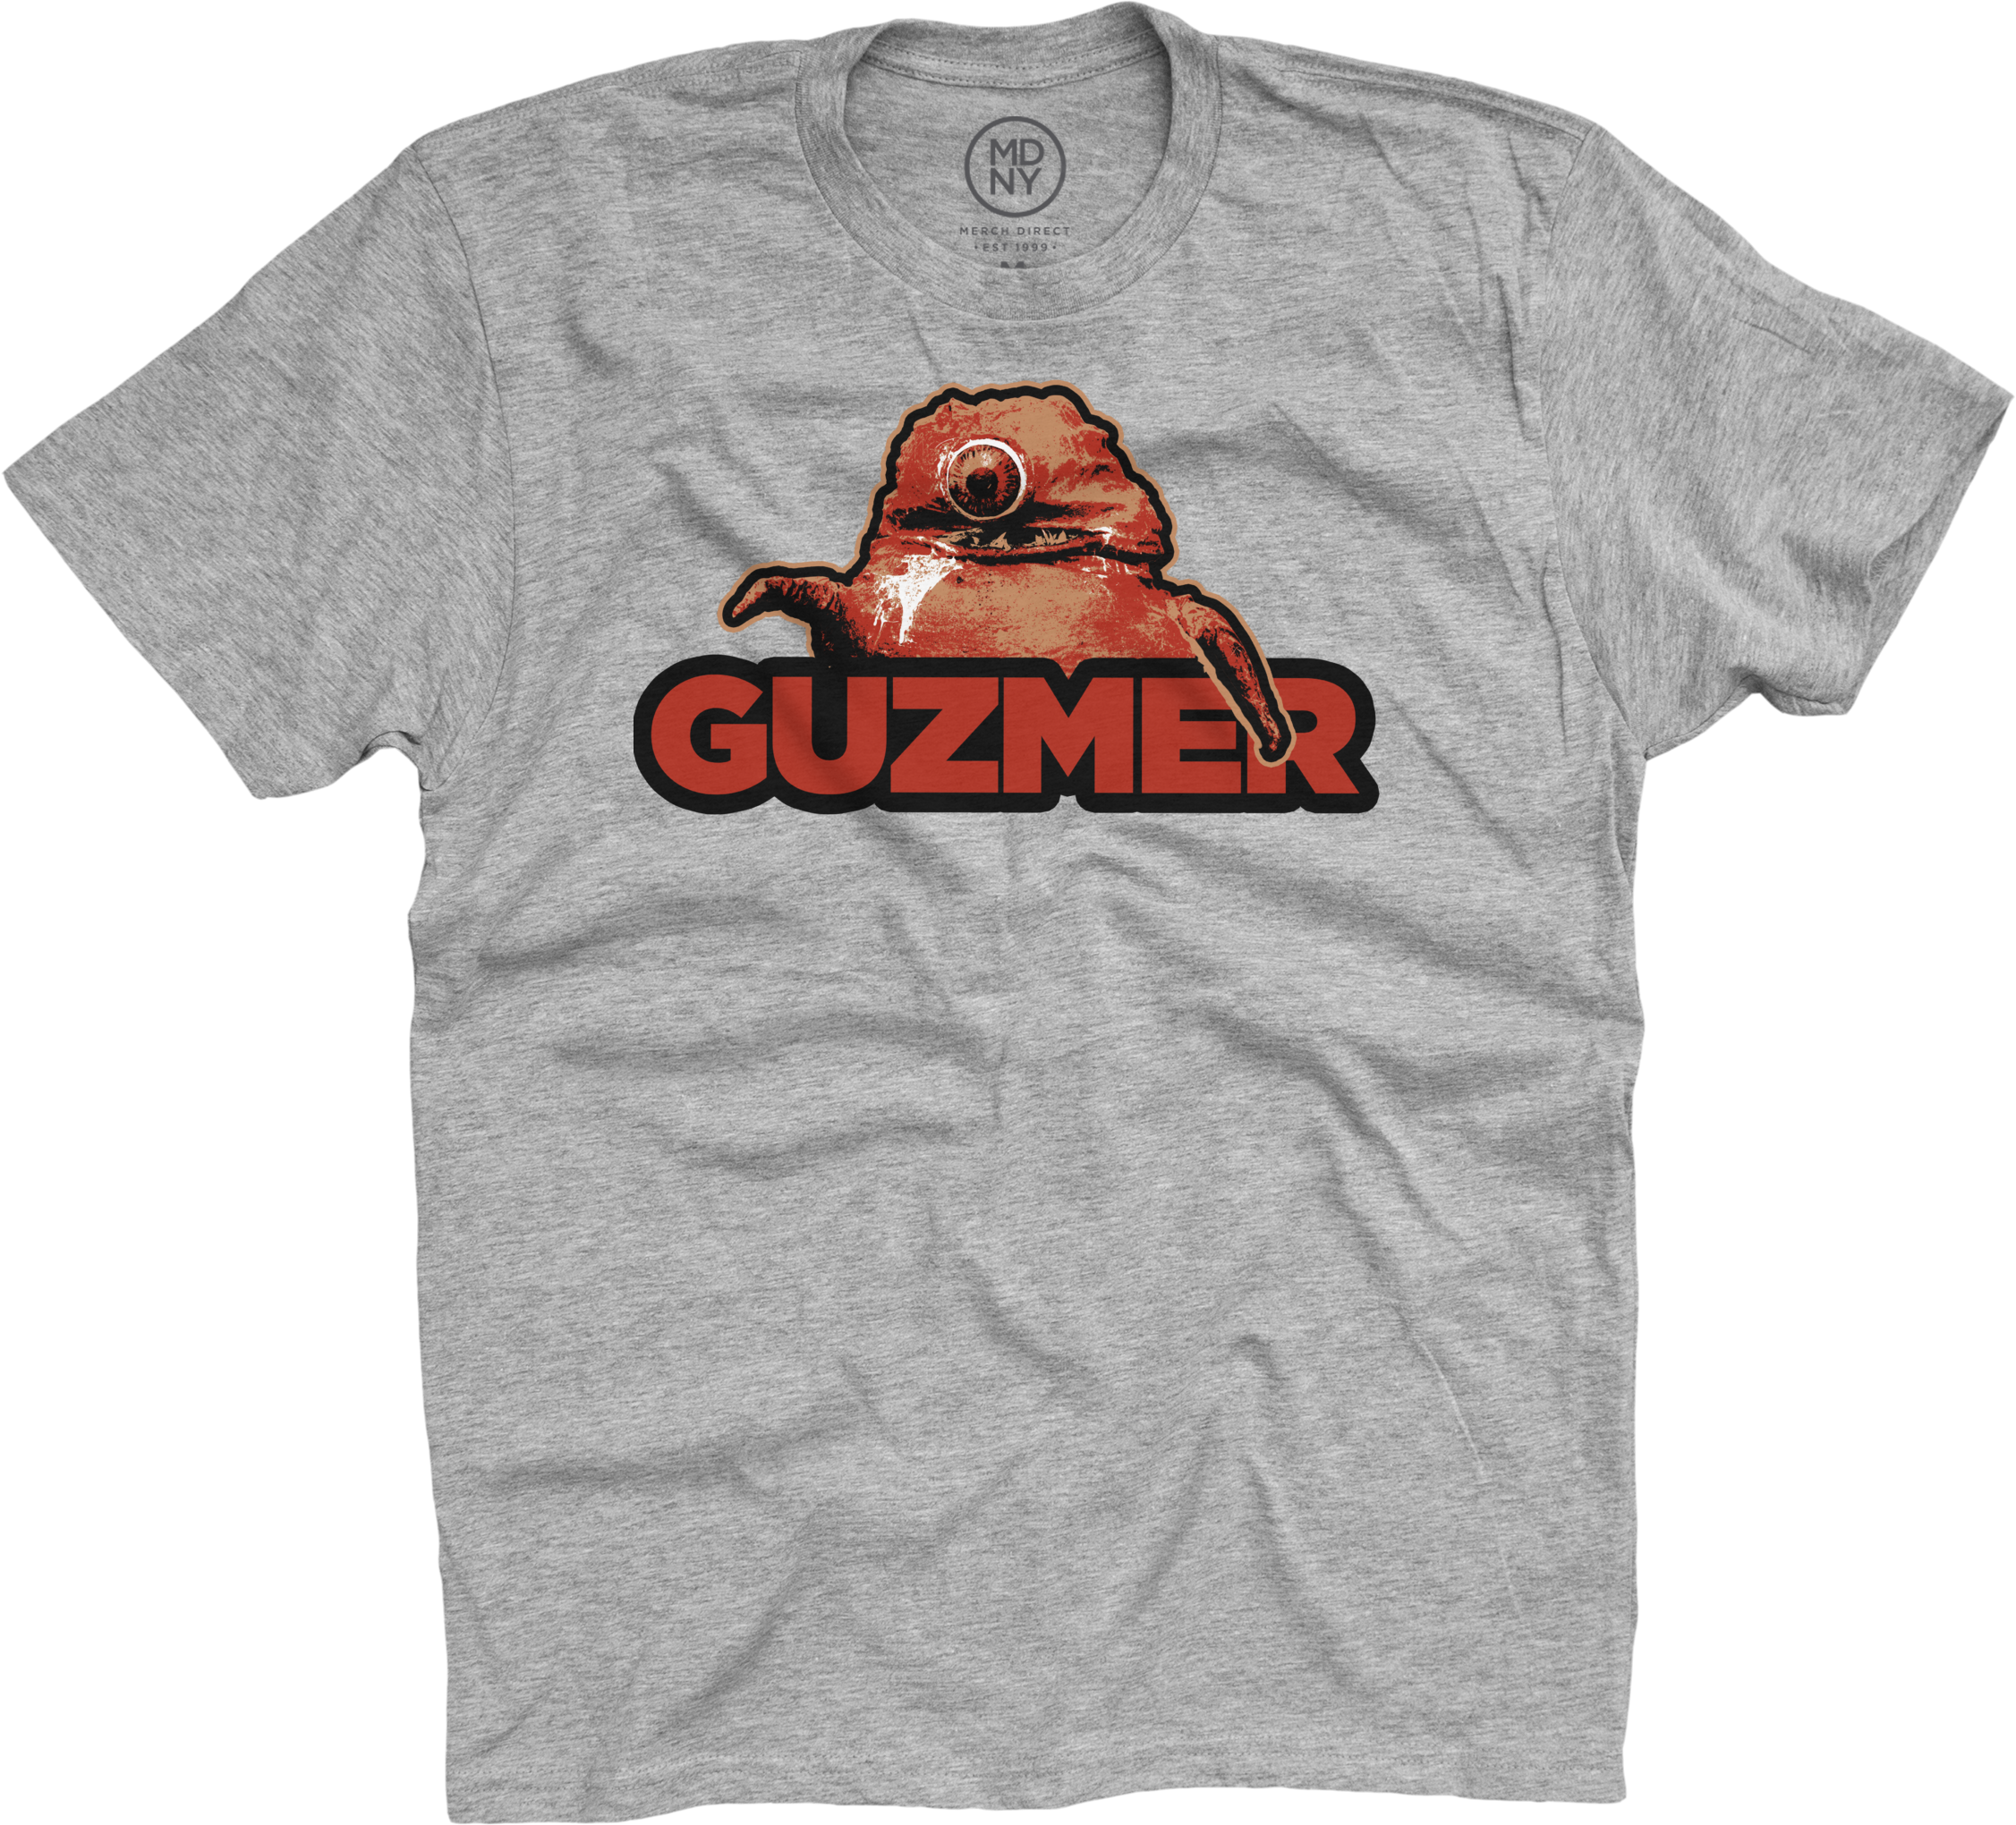 Guzmer on Heather Grey T-Shirt